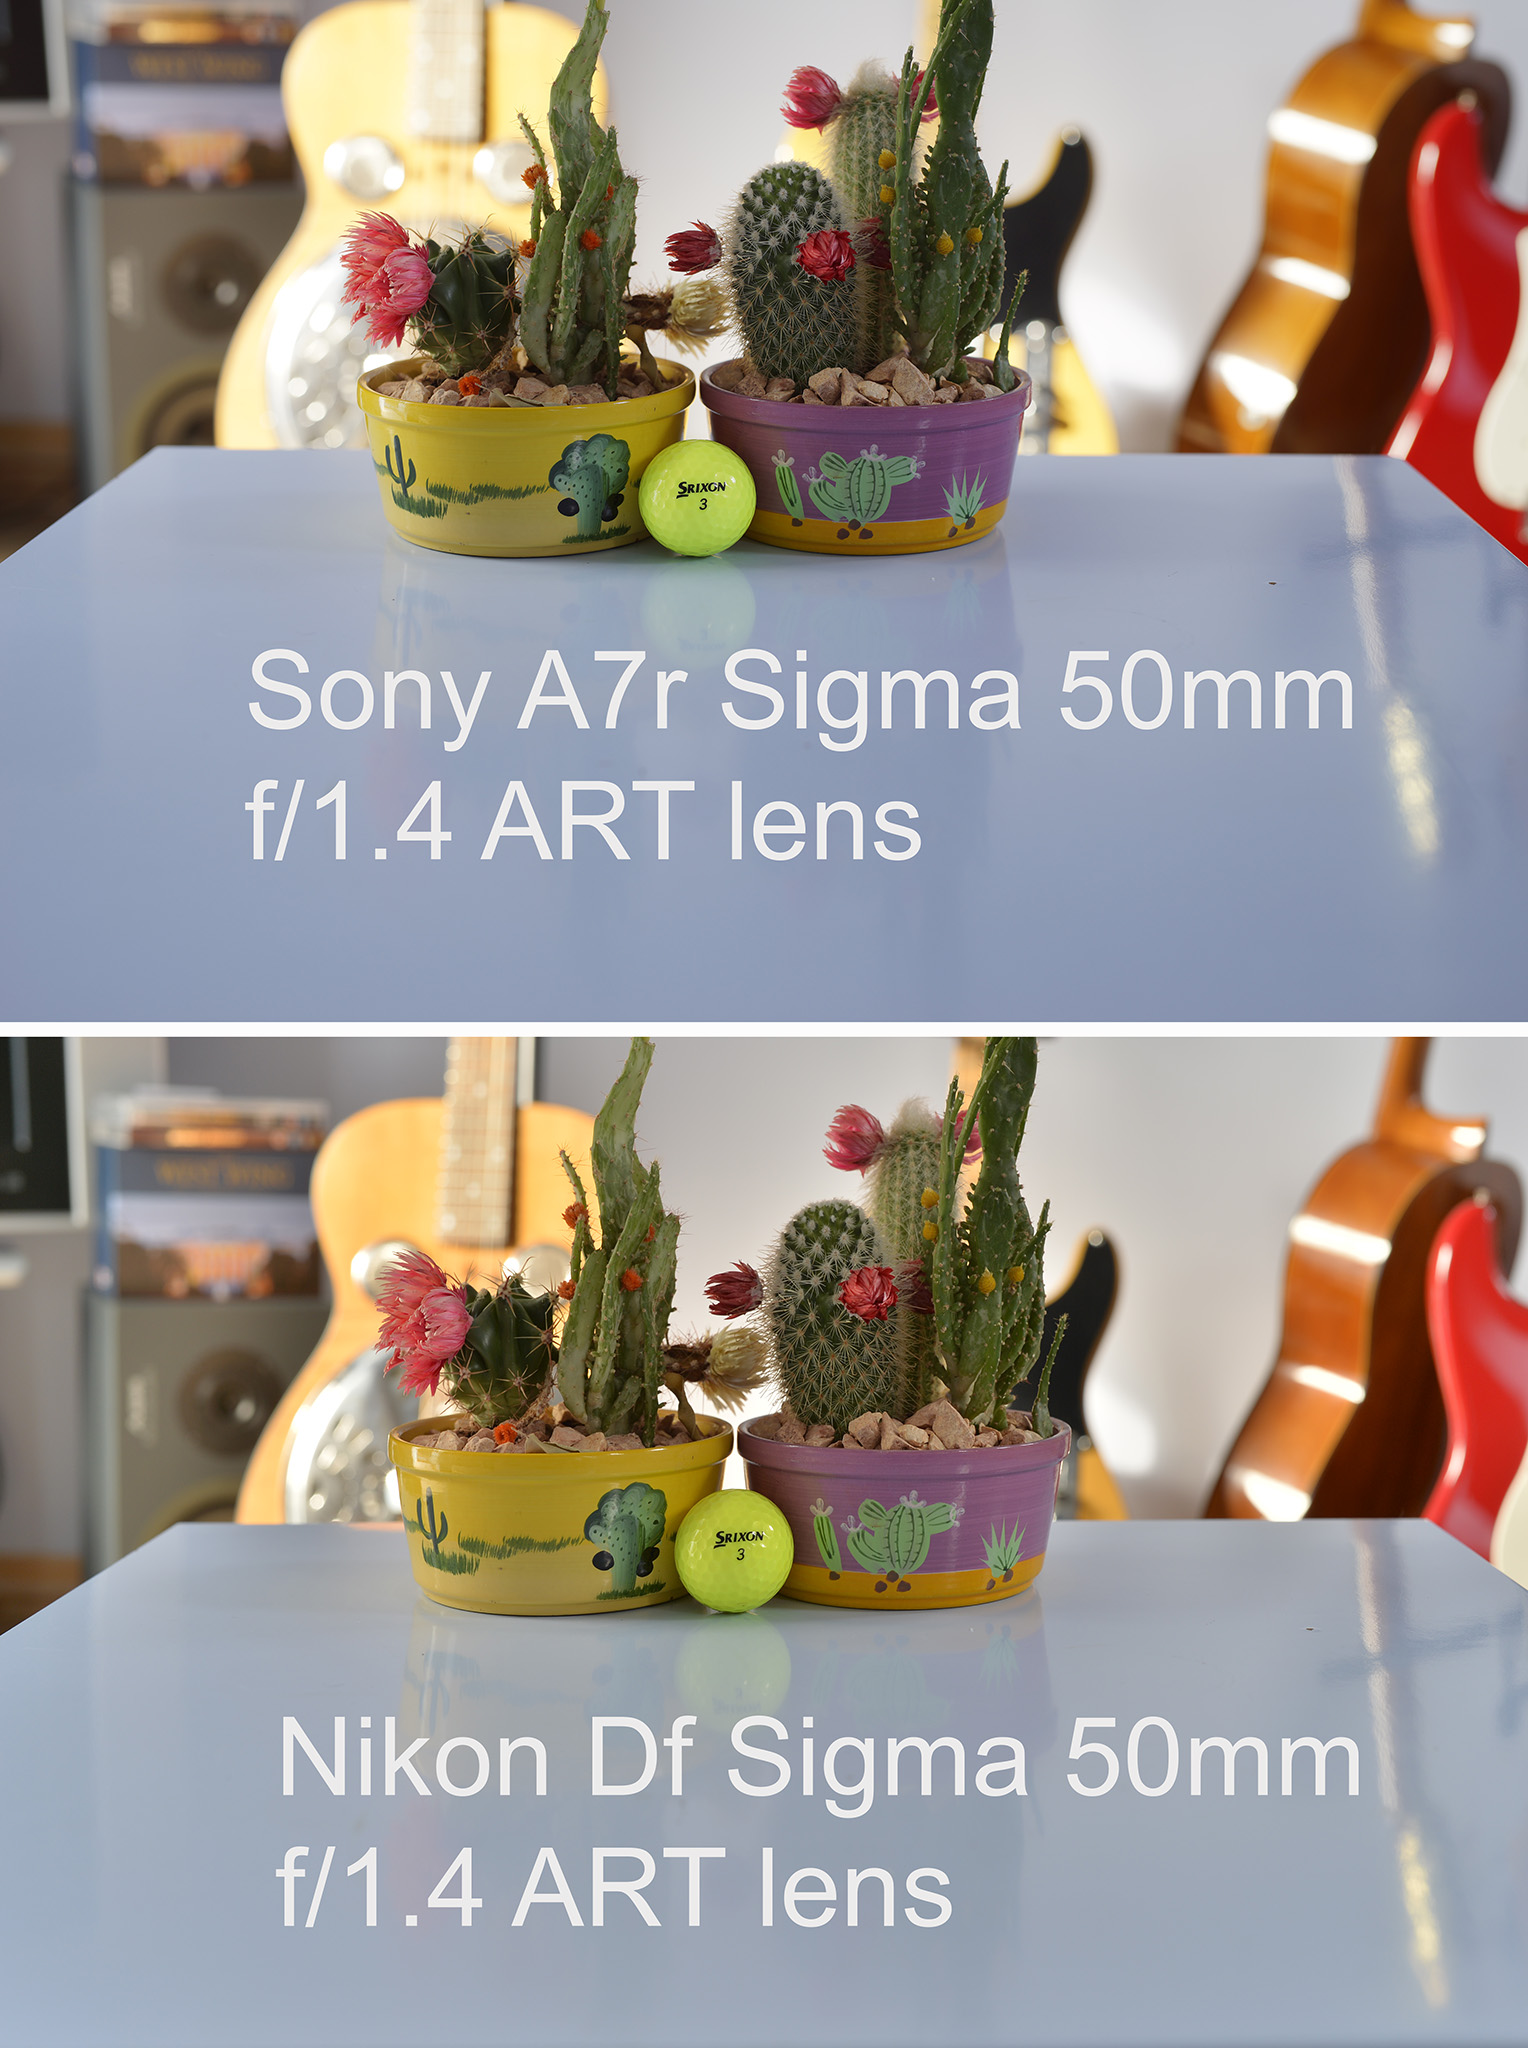 Nikon Df and Sony A7r both fitted with  Sigma 50mm f/1.4 ART lens